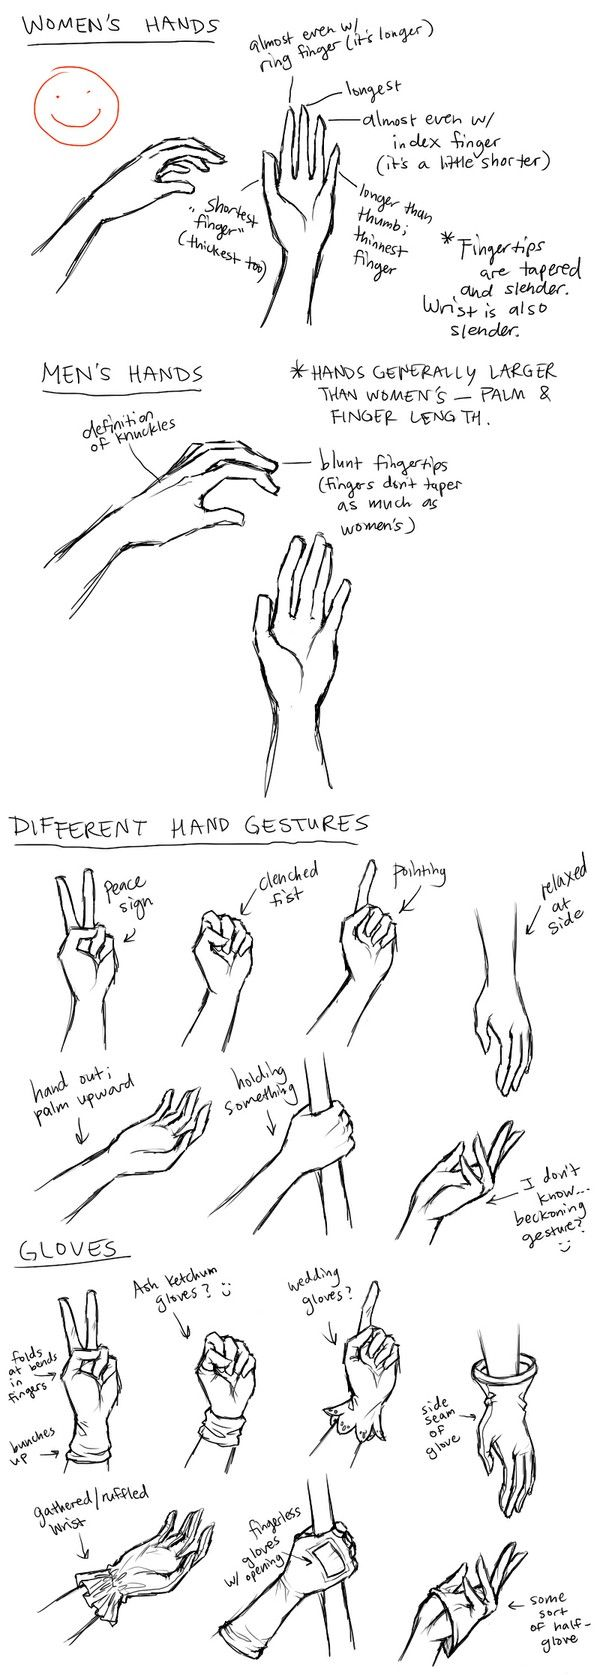 I'm Terrible At Drawing Hands, So This Is Pretty Useful; Especially How